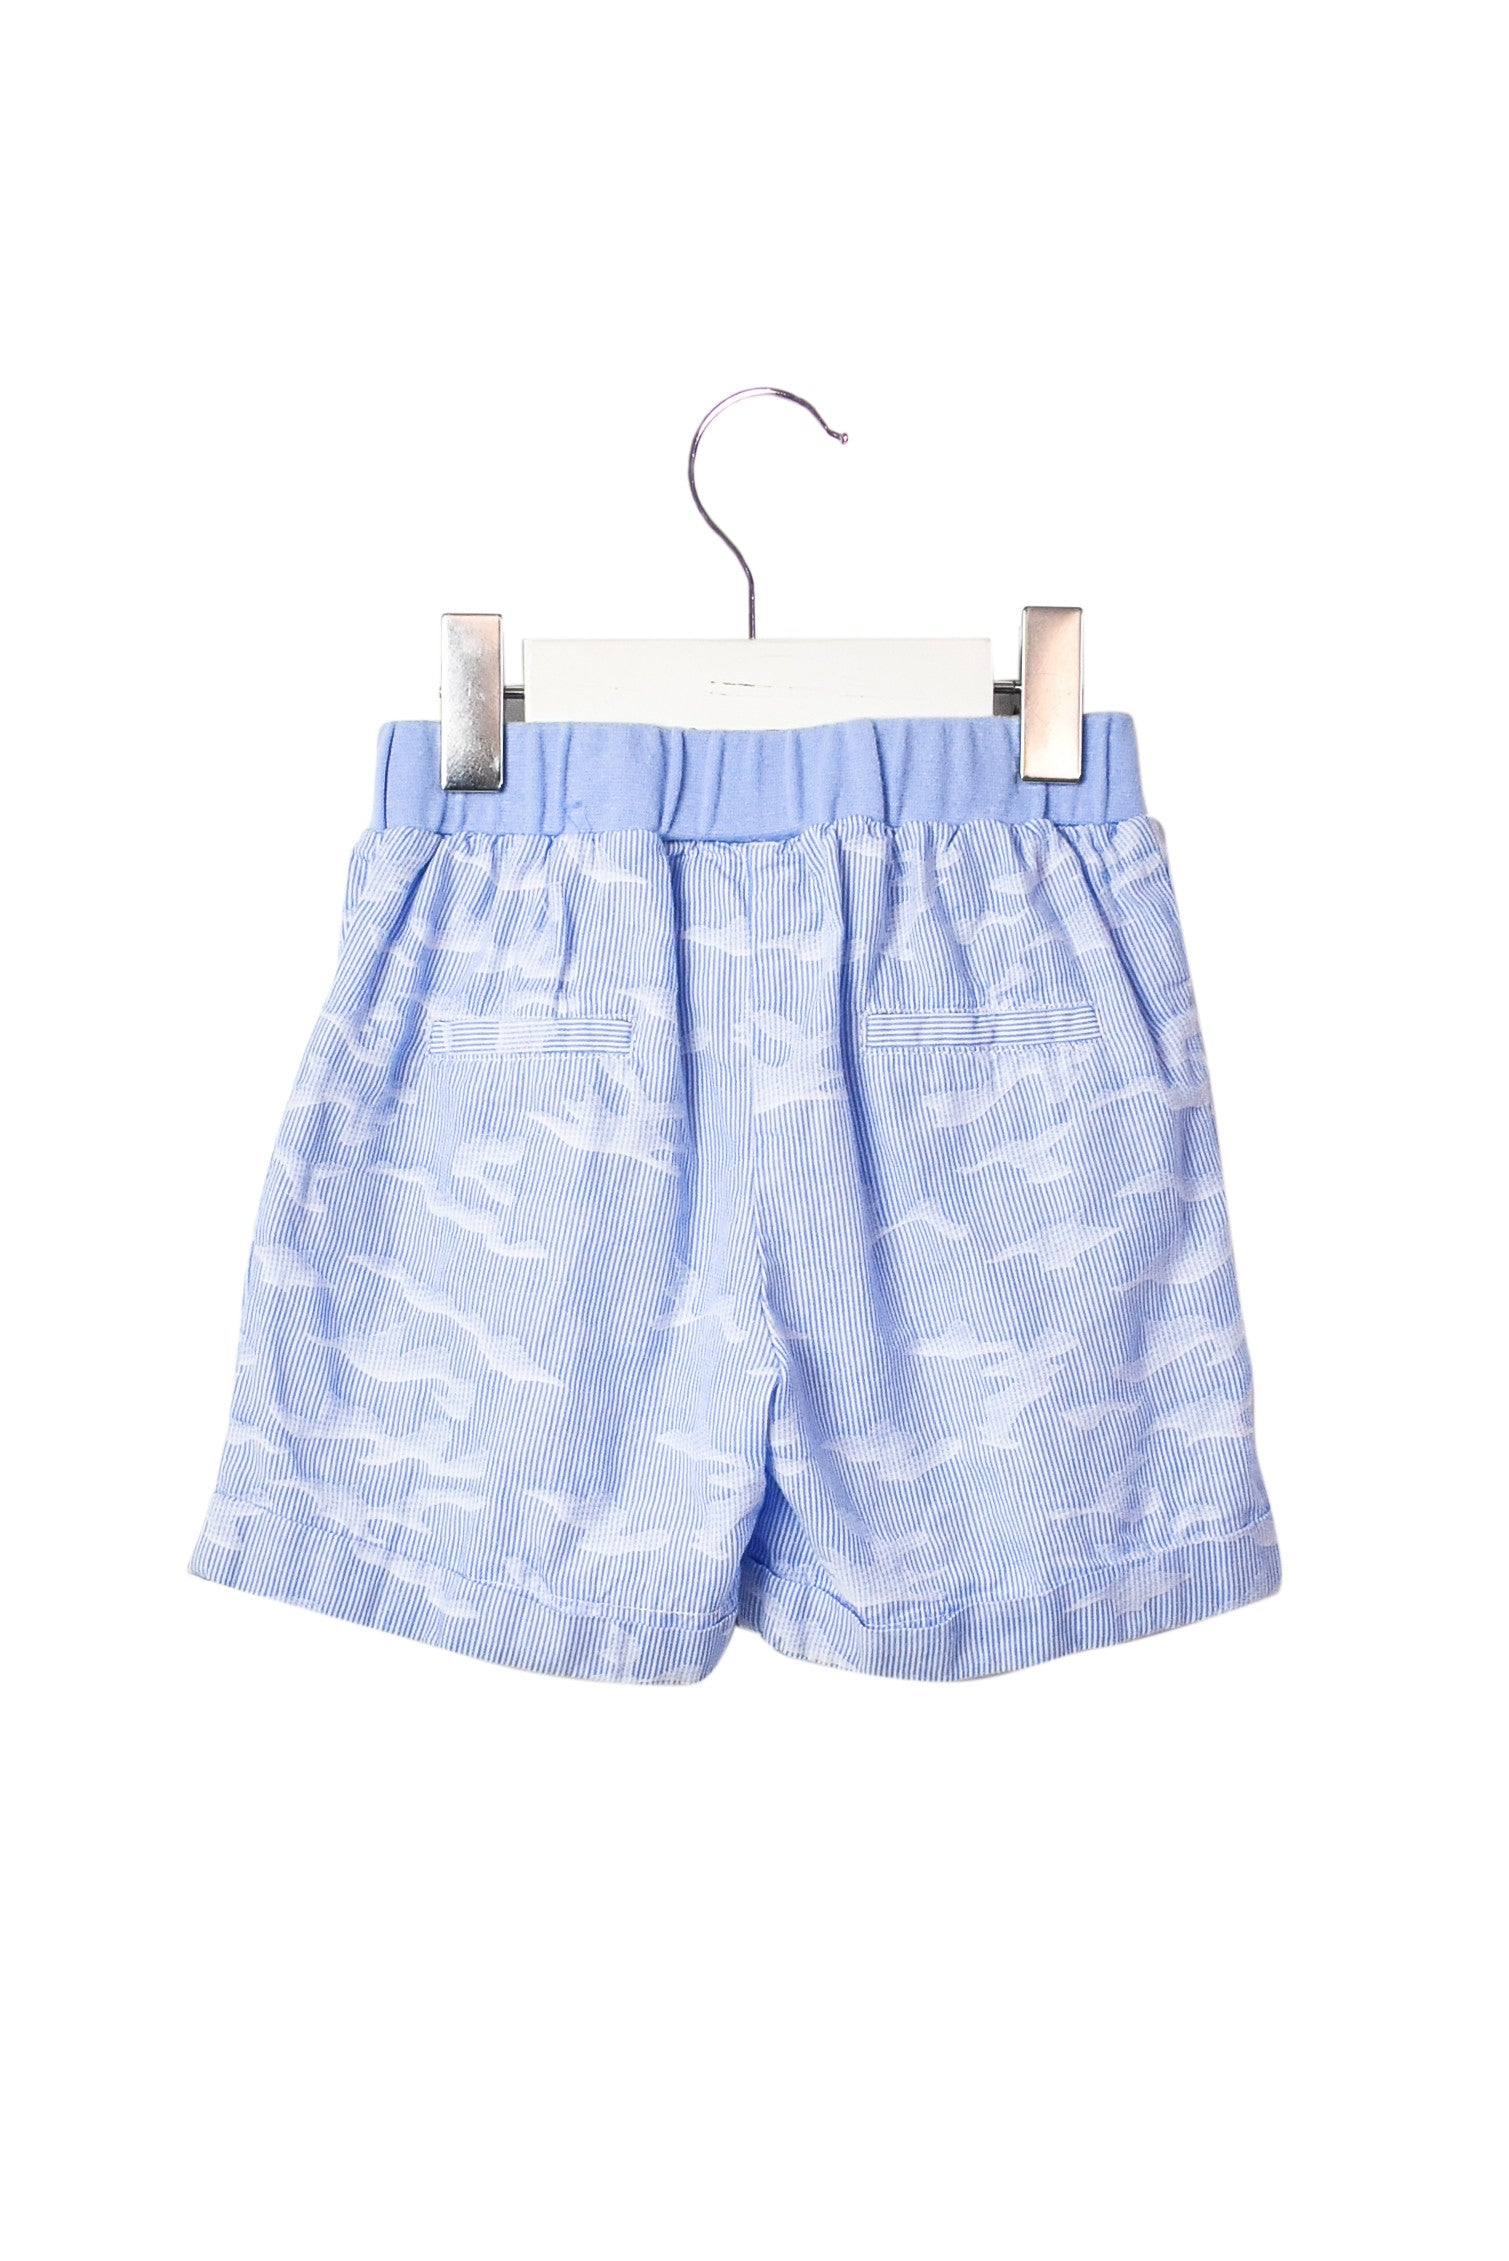 10005014 Chickeeduck Baby~Shorts 12-18M, Chickeeduck Retykle | Online Baby & Kids Clothing Hong Kong